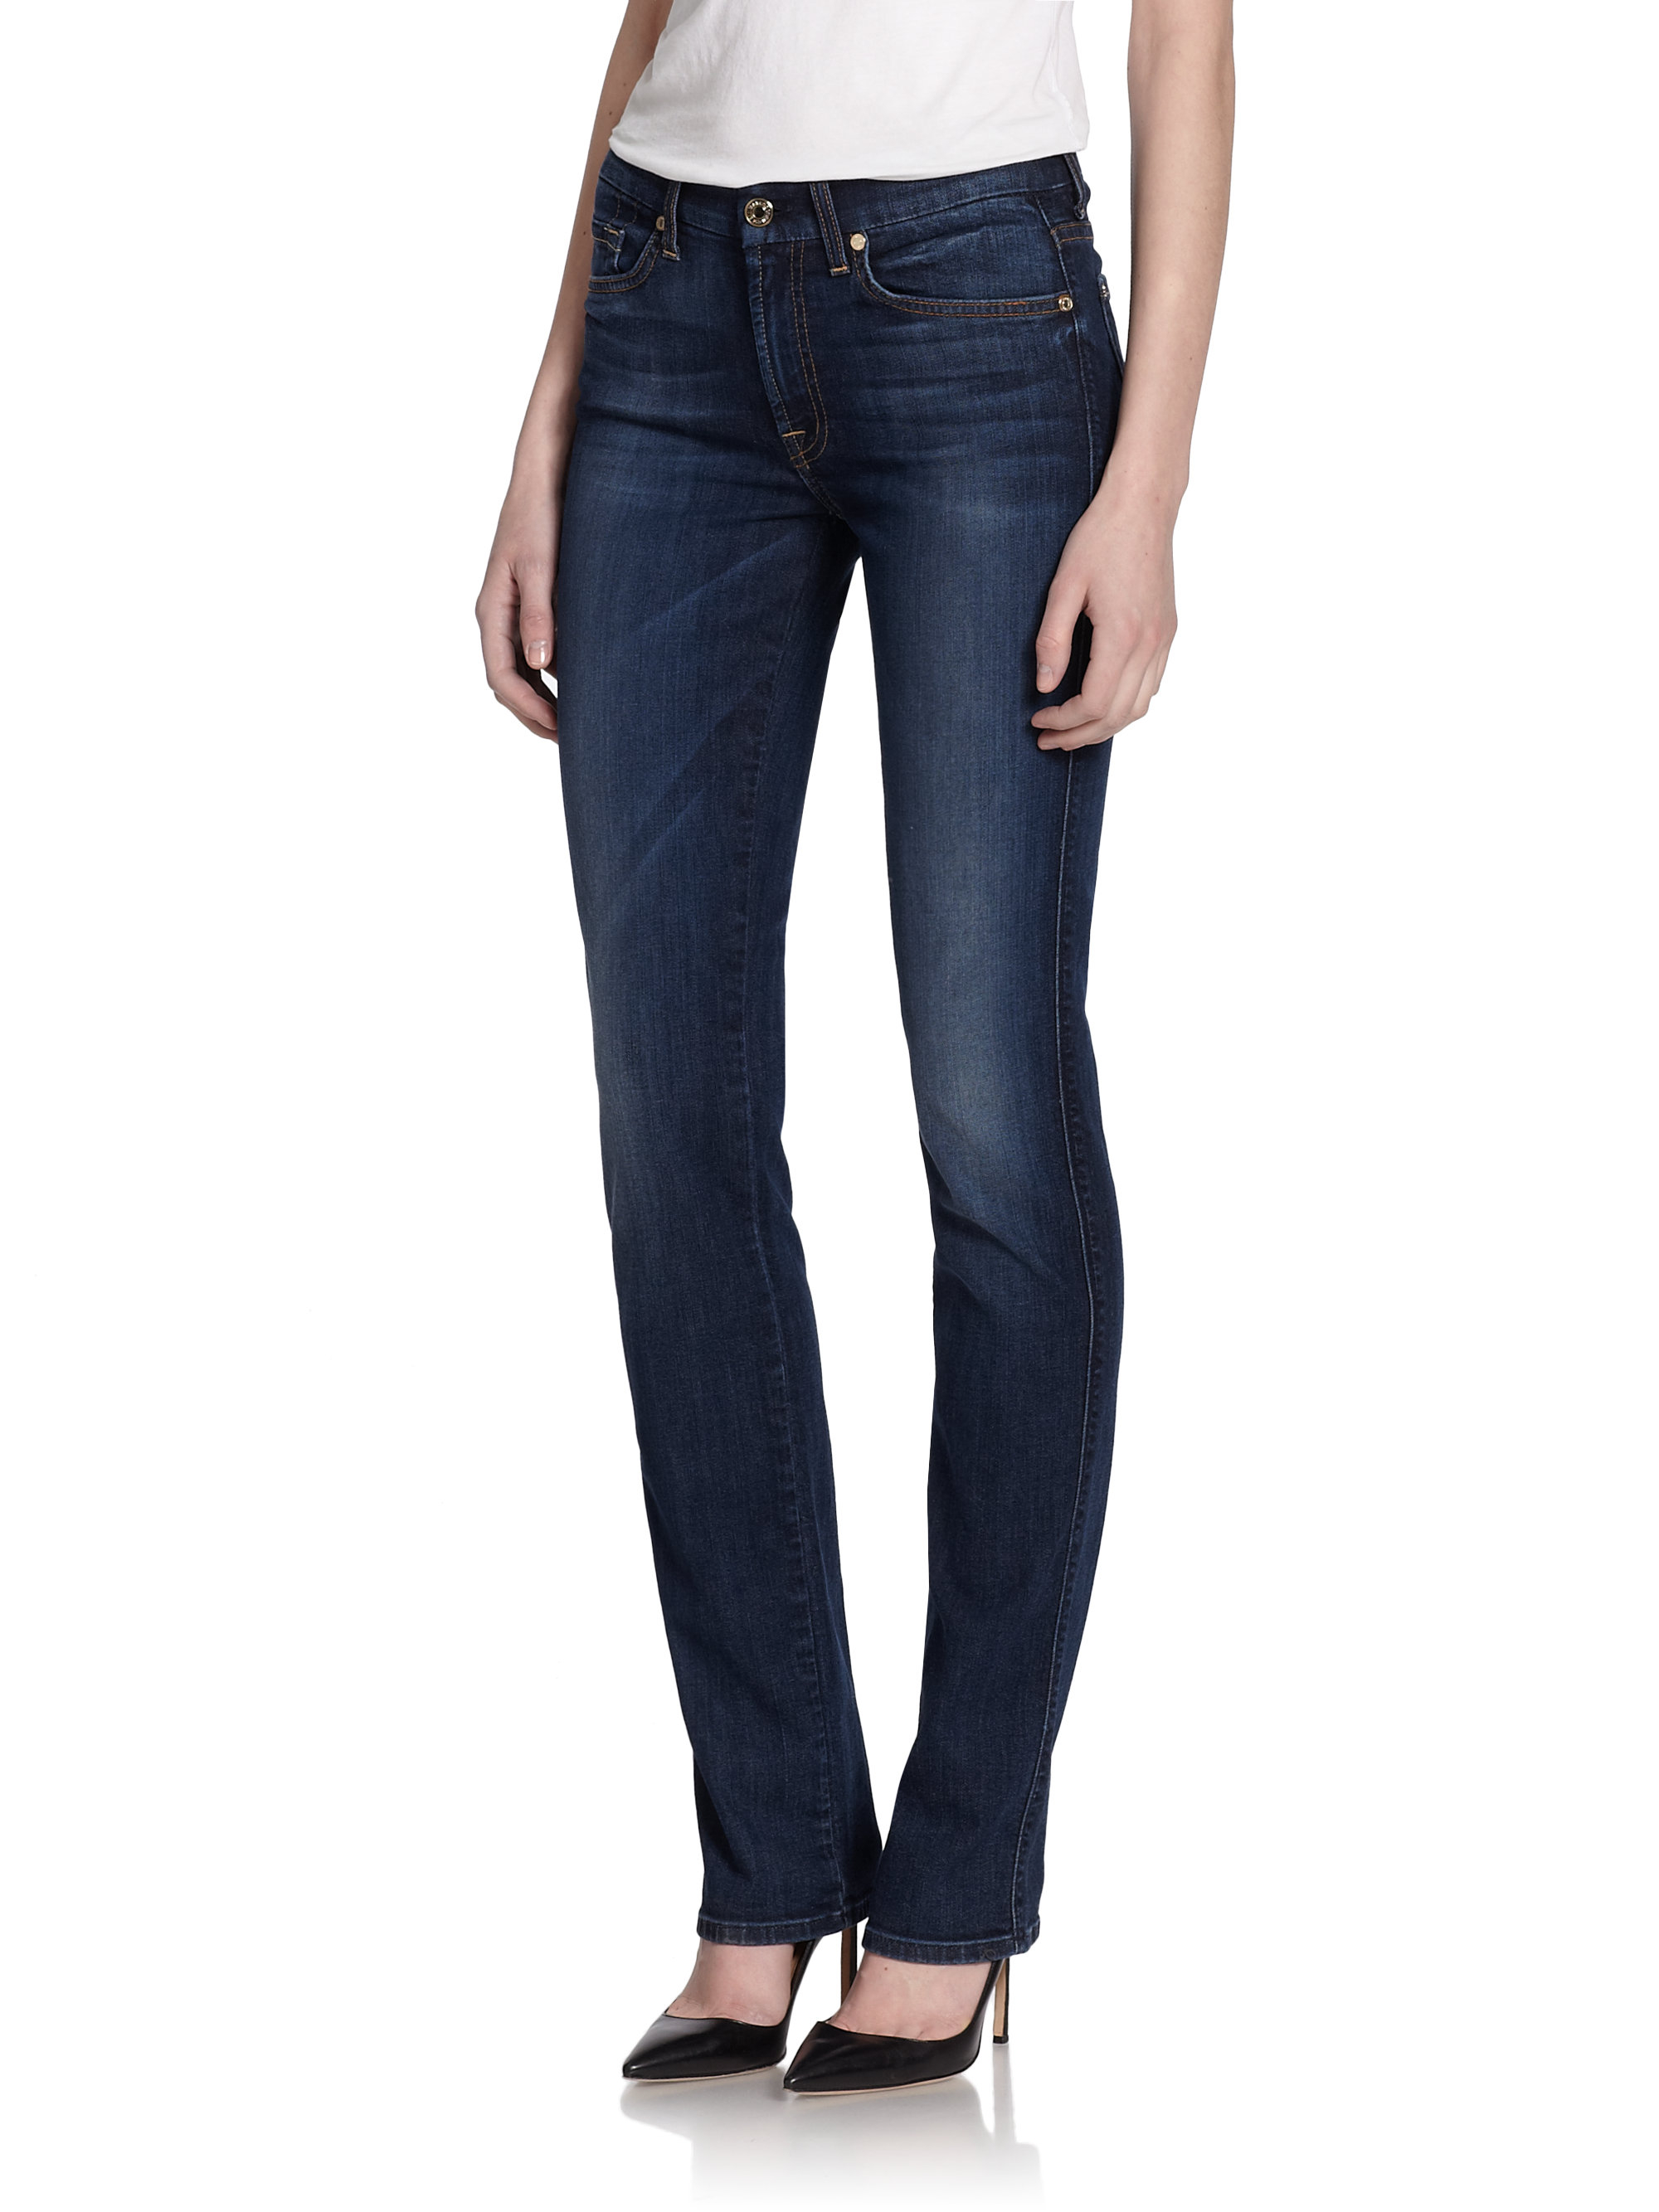 Sale High Quality Womens Kimmie Straight Slim Jeans 7 For All Mankind Quality From China Cheap Clearance Fashionable Purchase Knock Off WymIrIo5W